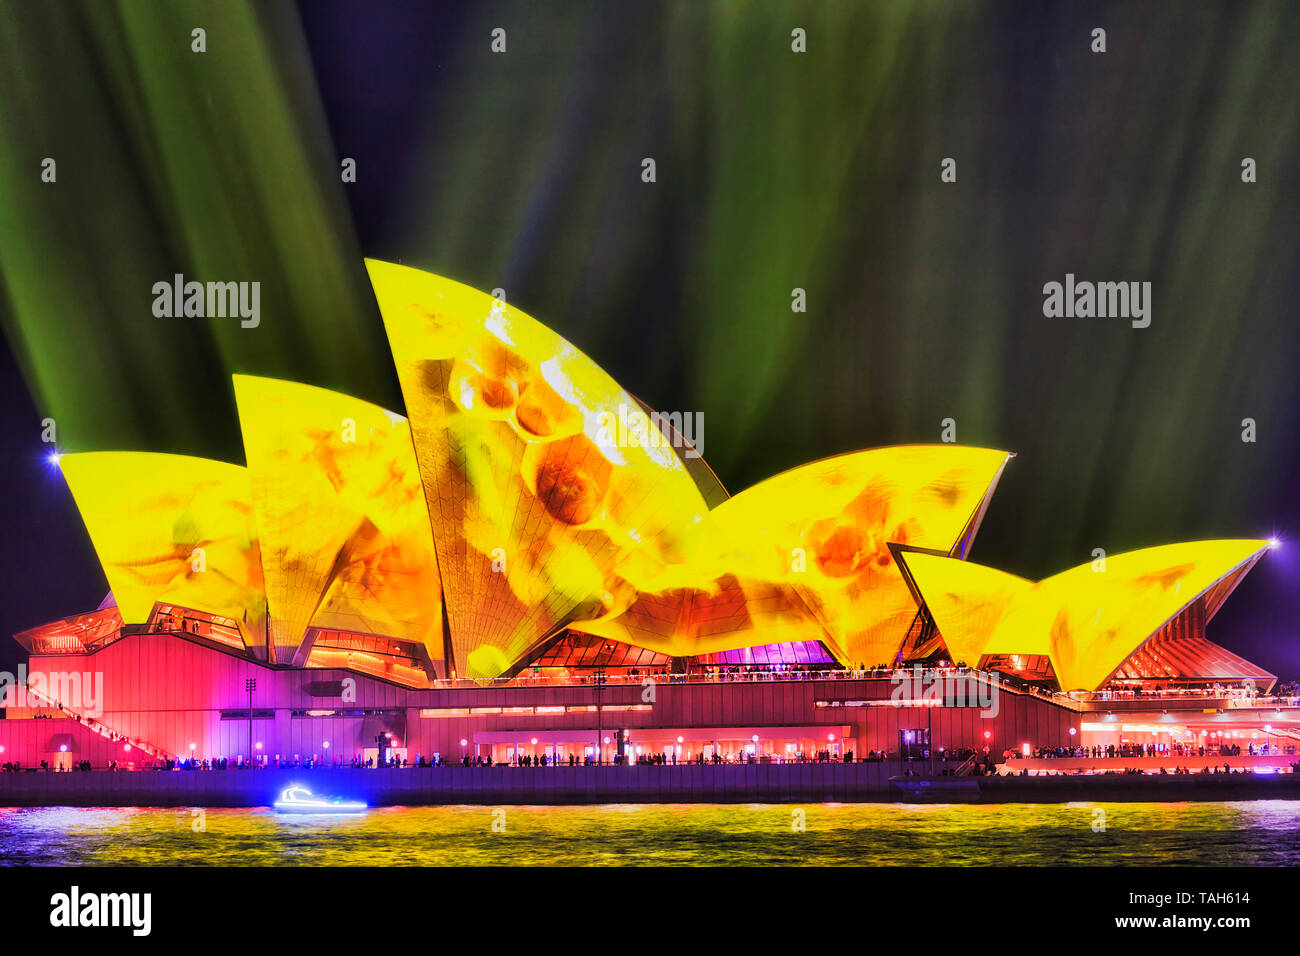 Sydney, Australia - 25 May 2018: Yellow fading light painted image of tiled sails of the SYdney Opera house under yellow streams of light in dark sky  - Stock Image